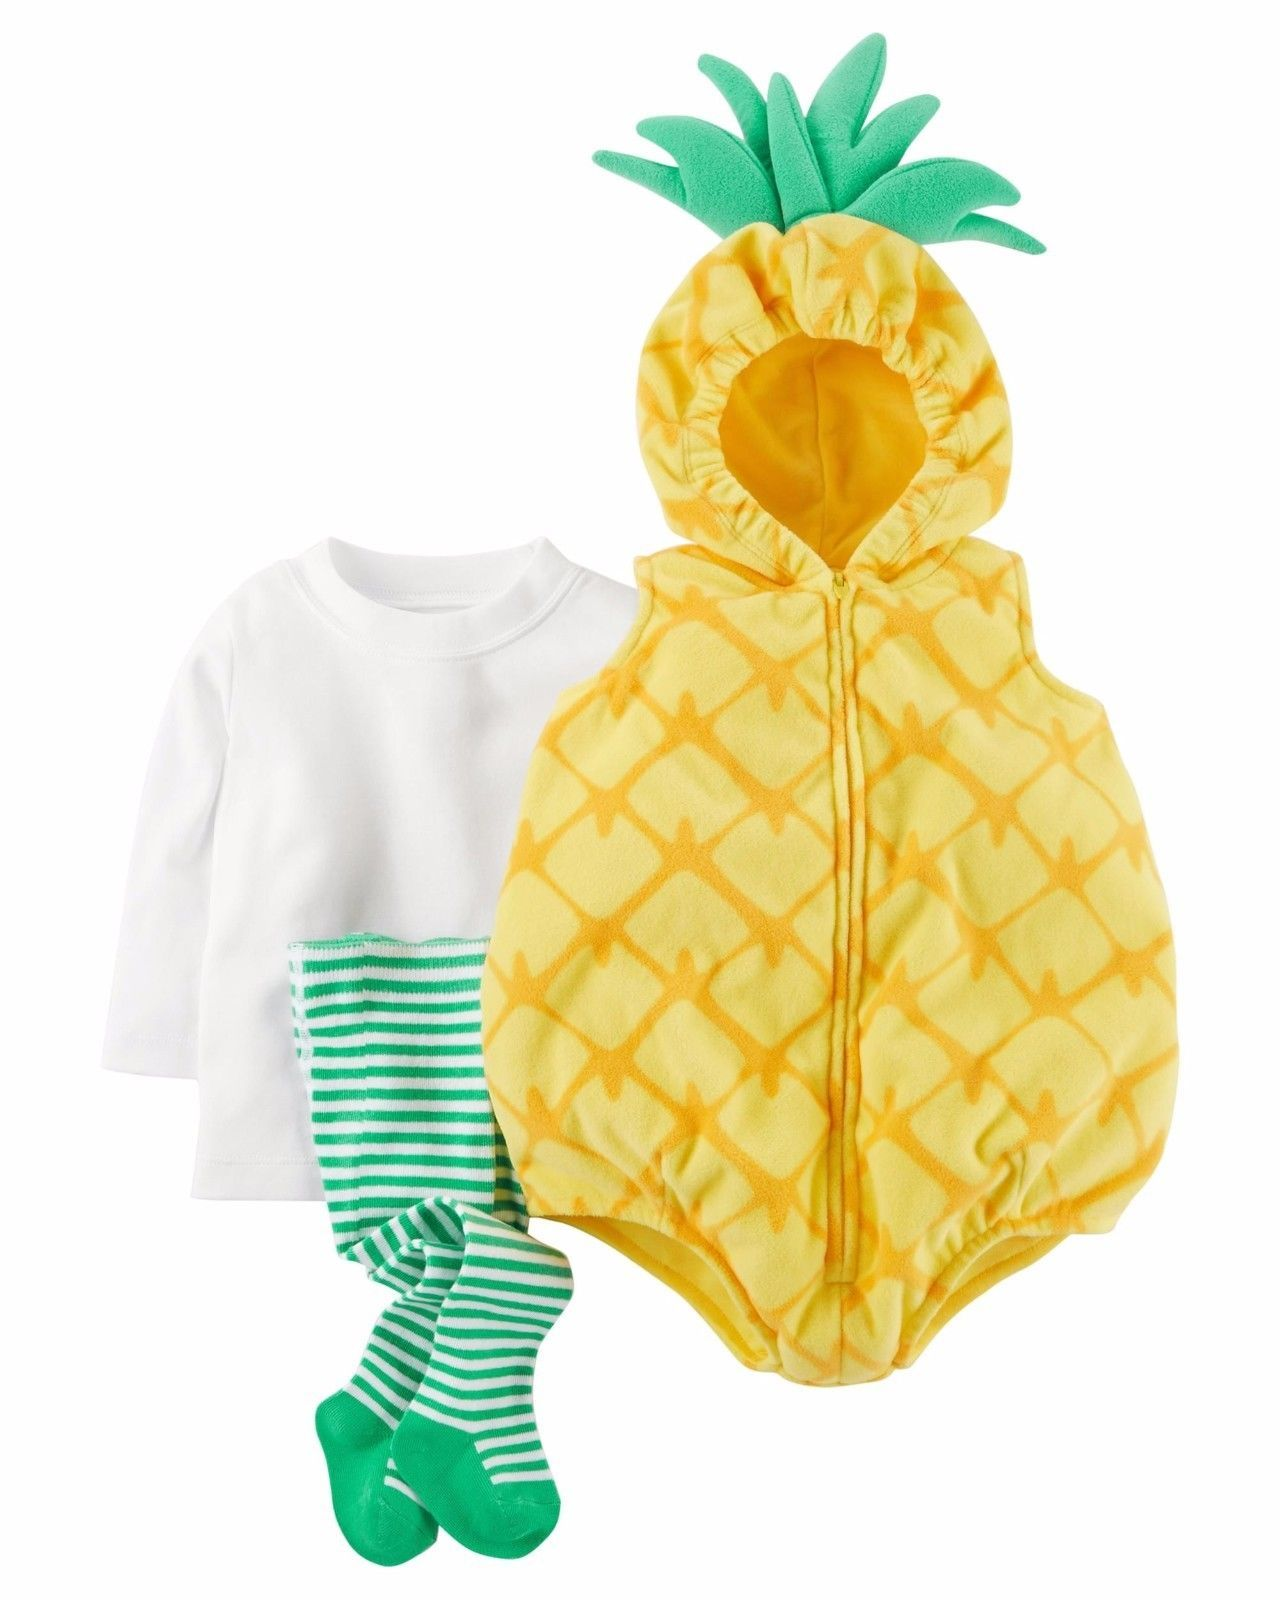 NEW NWT Carters Girls Pineapple Halloween Costume Size 18 Months